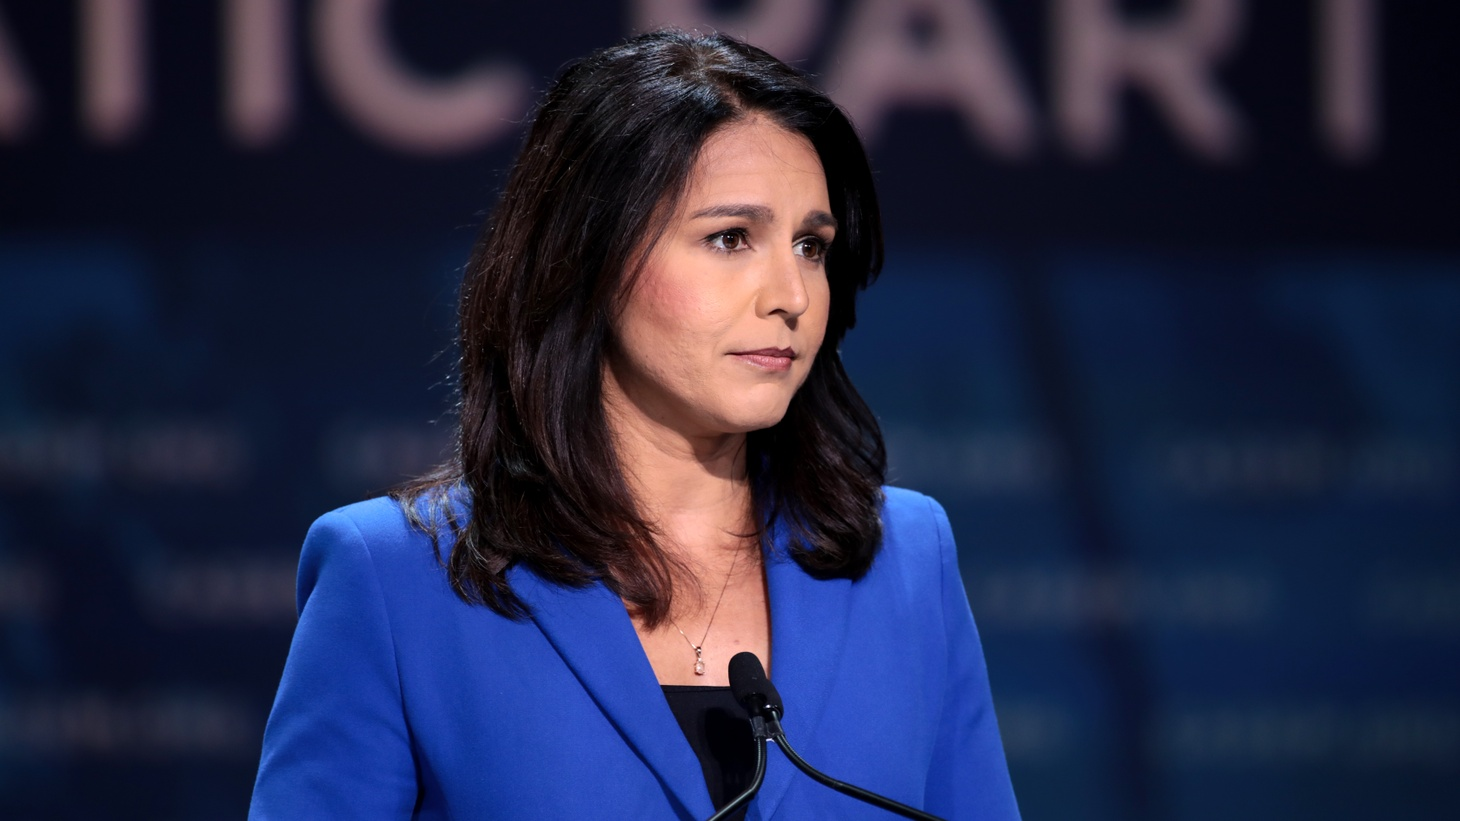 Tulsi Gabbard speaking with attendees at the 2019 California Democratic Party State Convention at the George R. Moscone Convention Center in San Francisco, California.